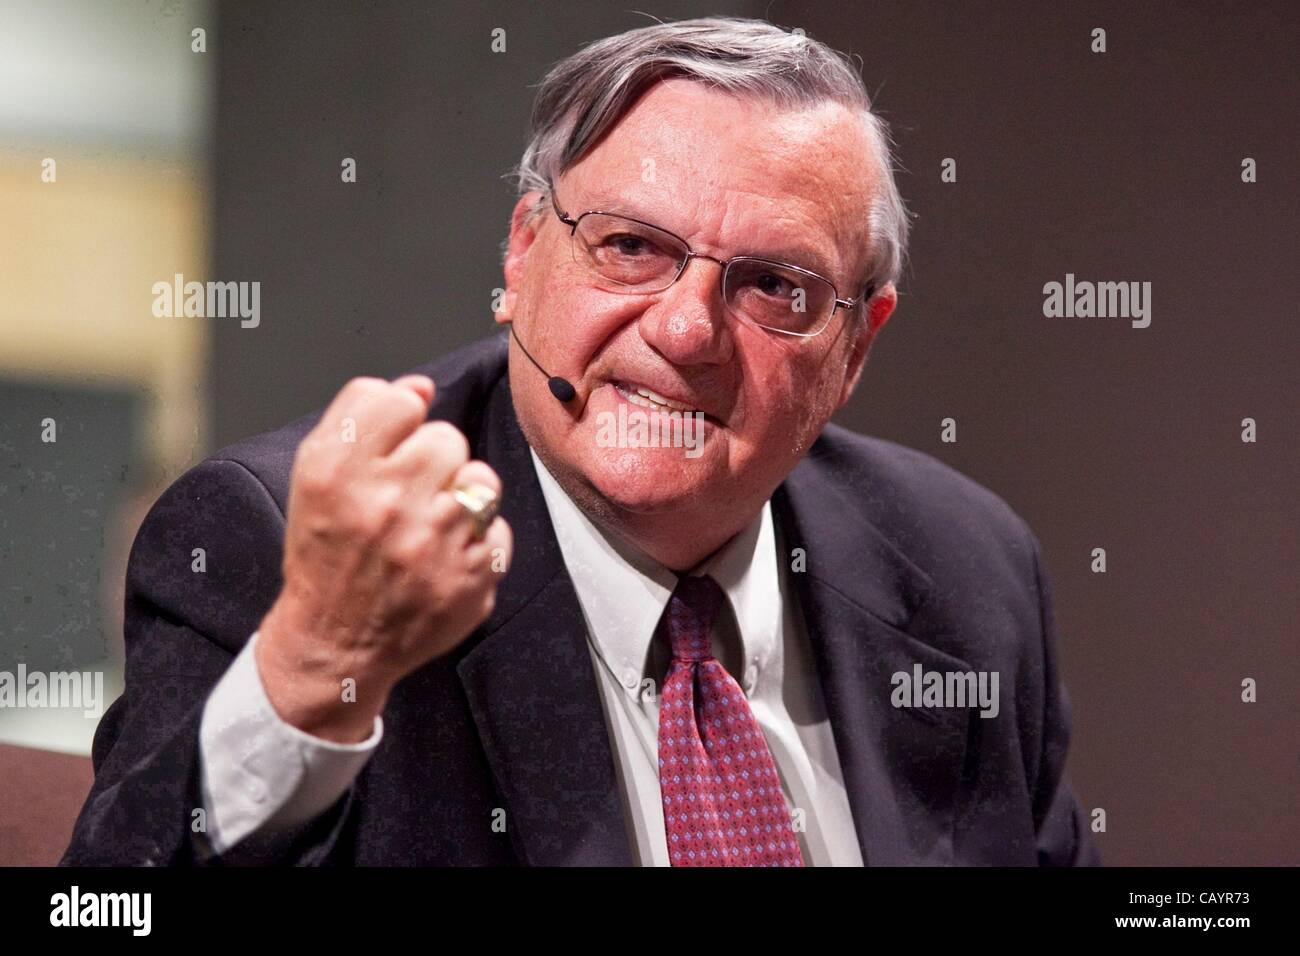 Nov 30, 2009 - Phoenix, Arizona, USA - Sheriff JOE ARPAIO, the Maricopa County Sheriff, answers questions at the - Stock Image